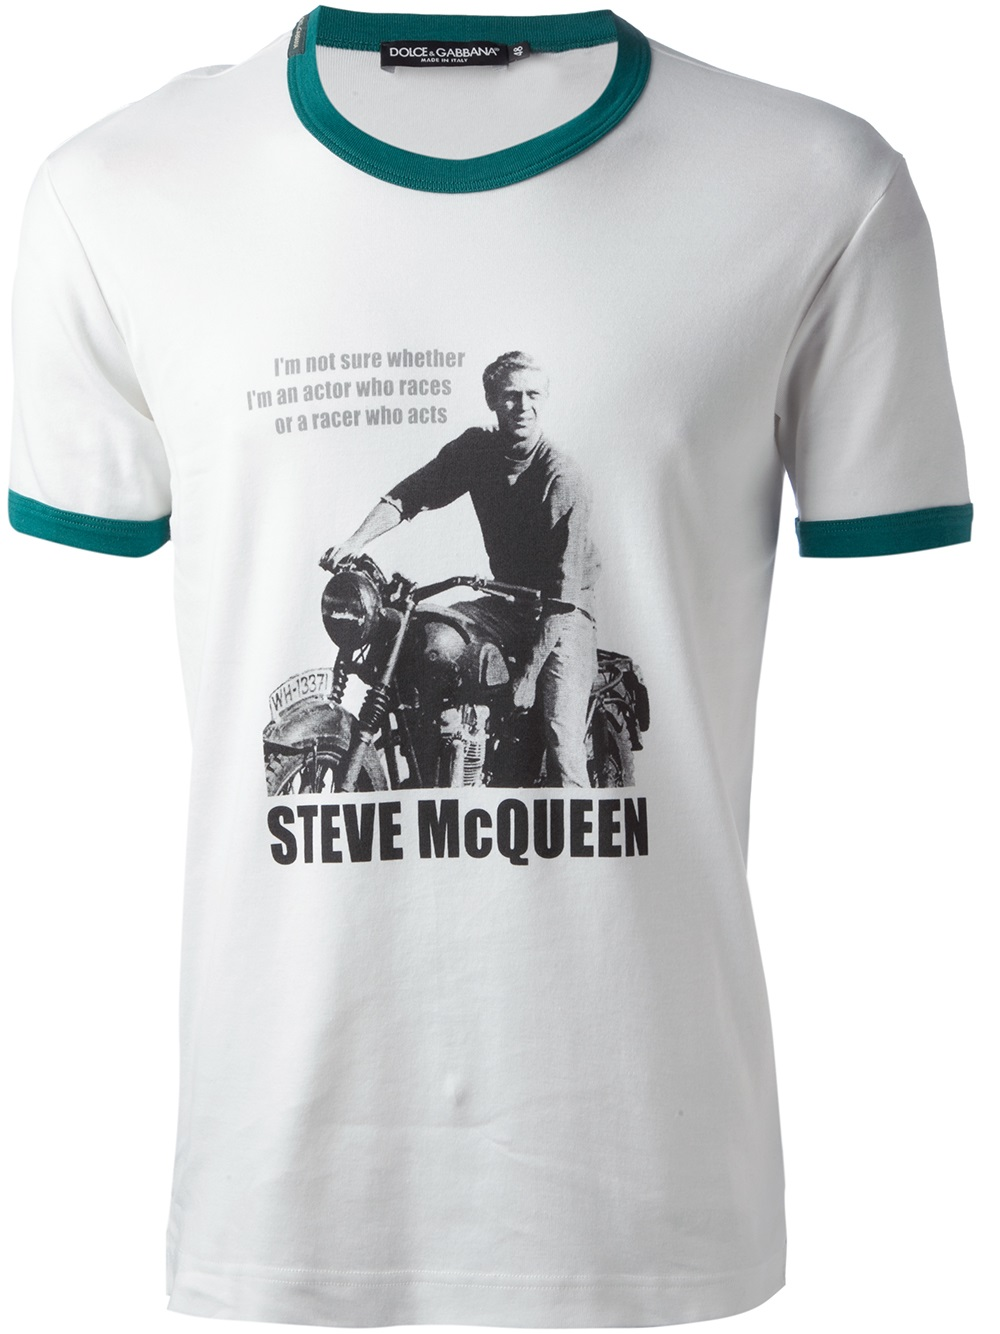 lyst dolce gabbana steve mcqueen quote tshirt in white. Black Bedroom Furniture Sets. Home Design Ideas